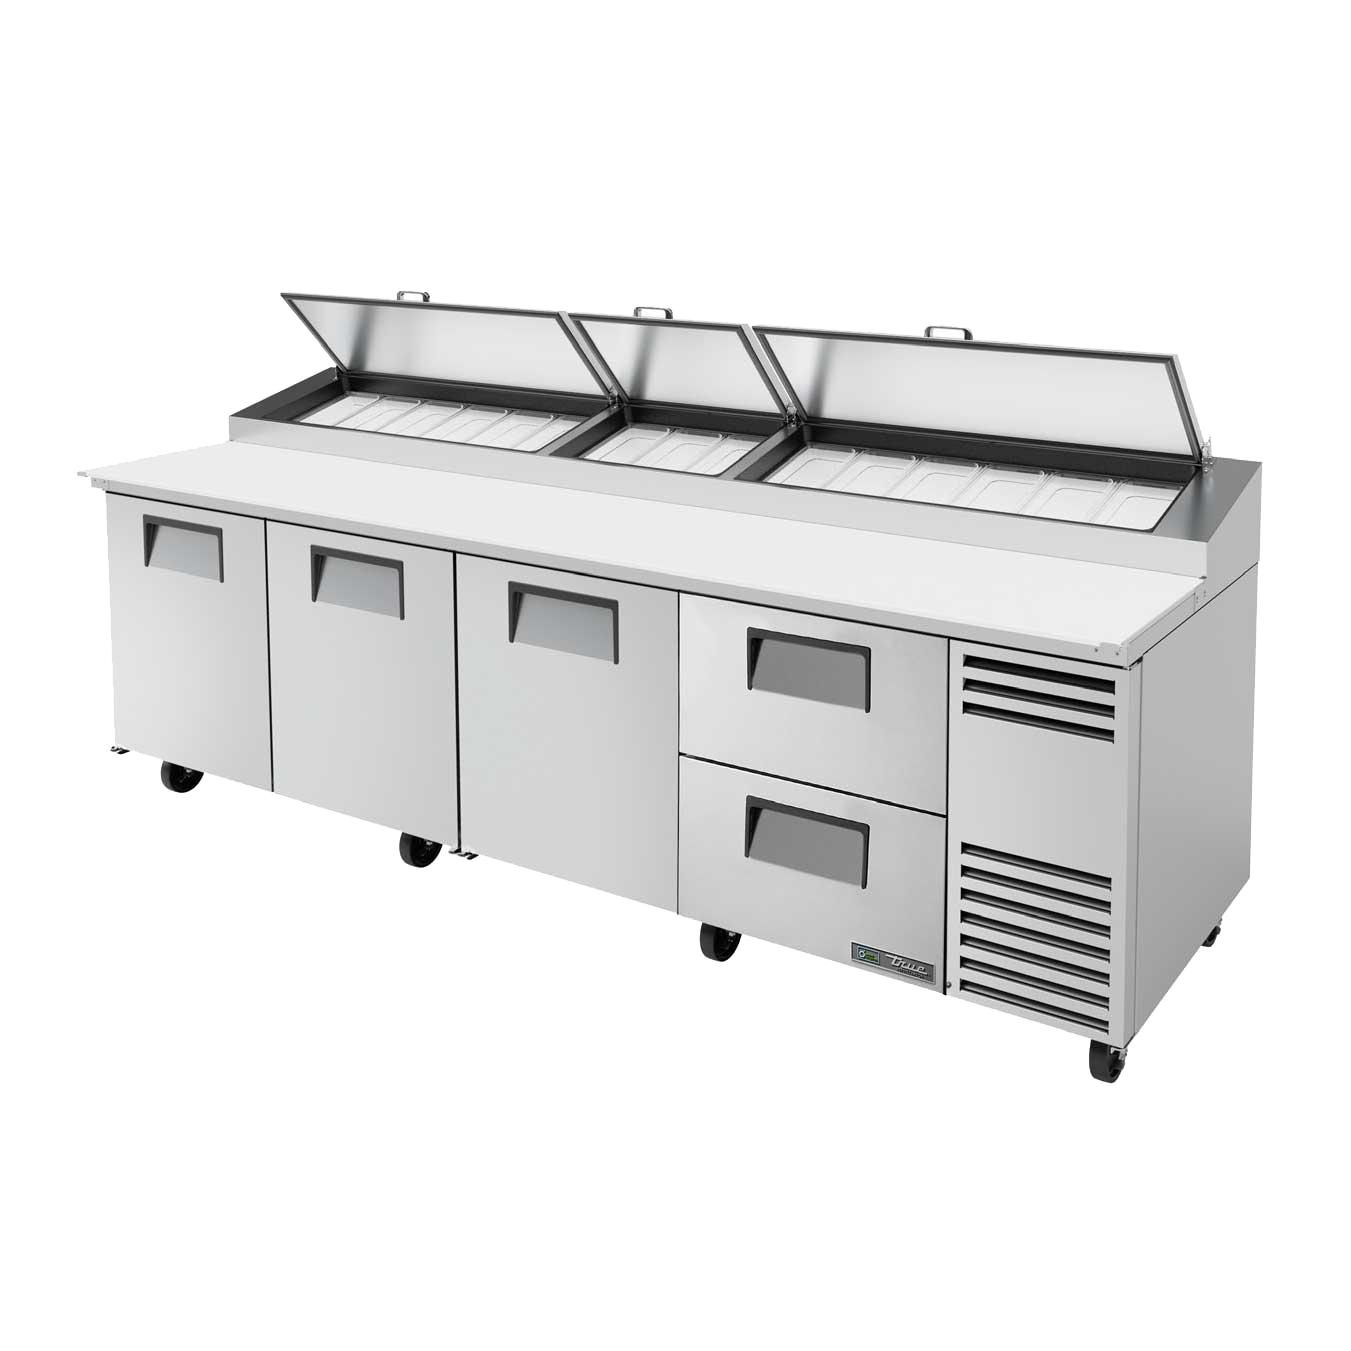 "superior-equipment-supply - True Food Service Equipment - True Stainless Steel Four Section Two Drawers 119""W Pizza Prep Table"